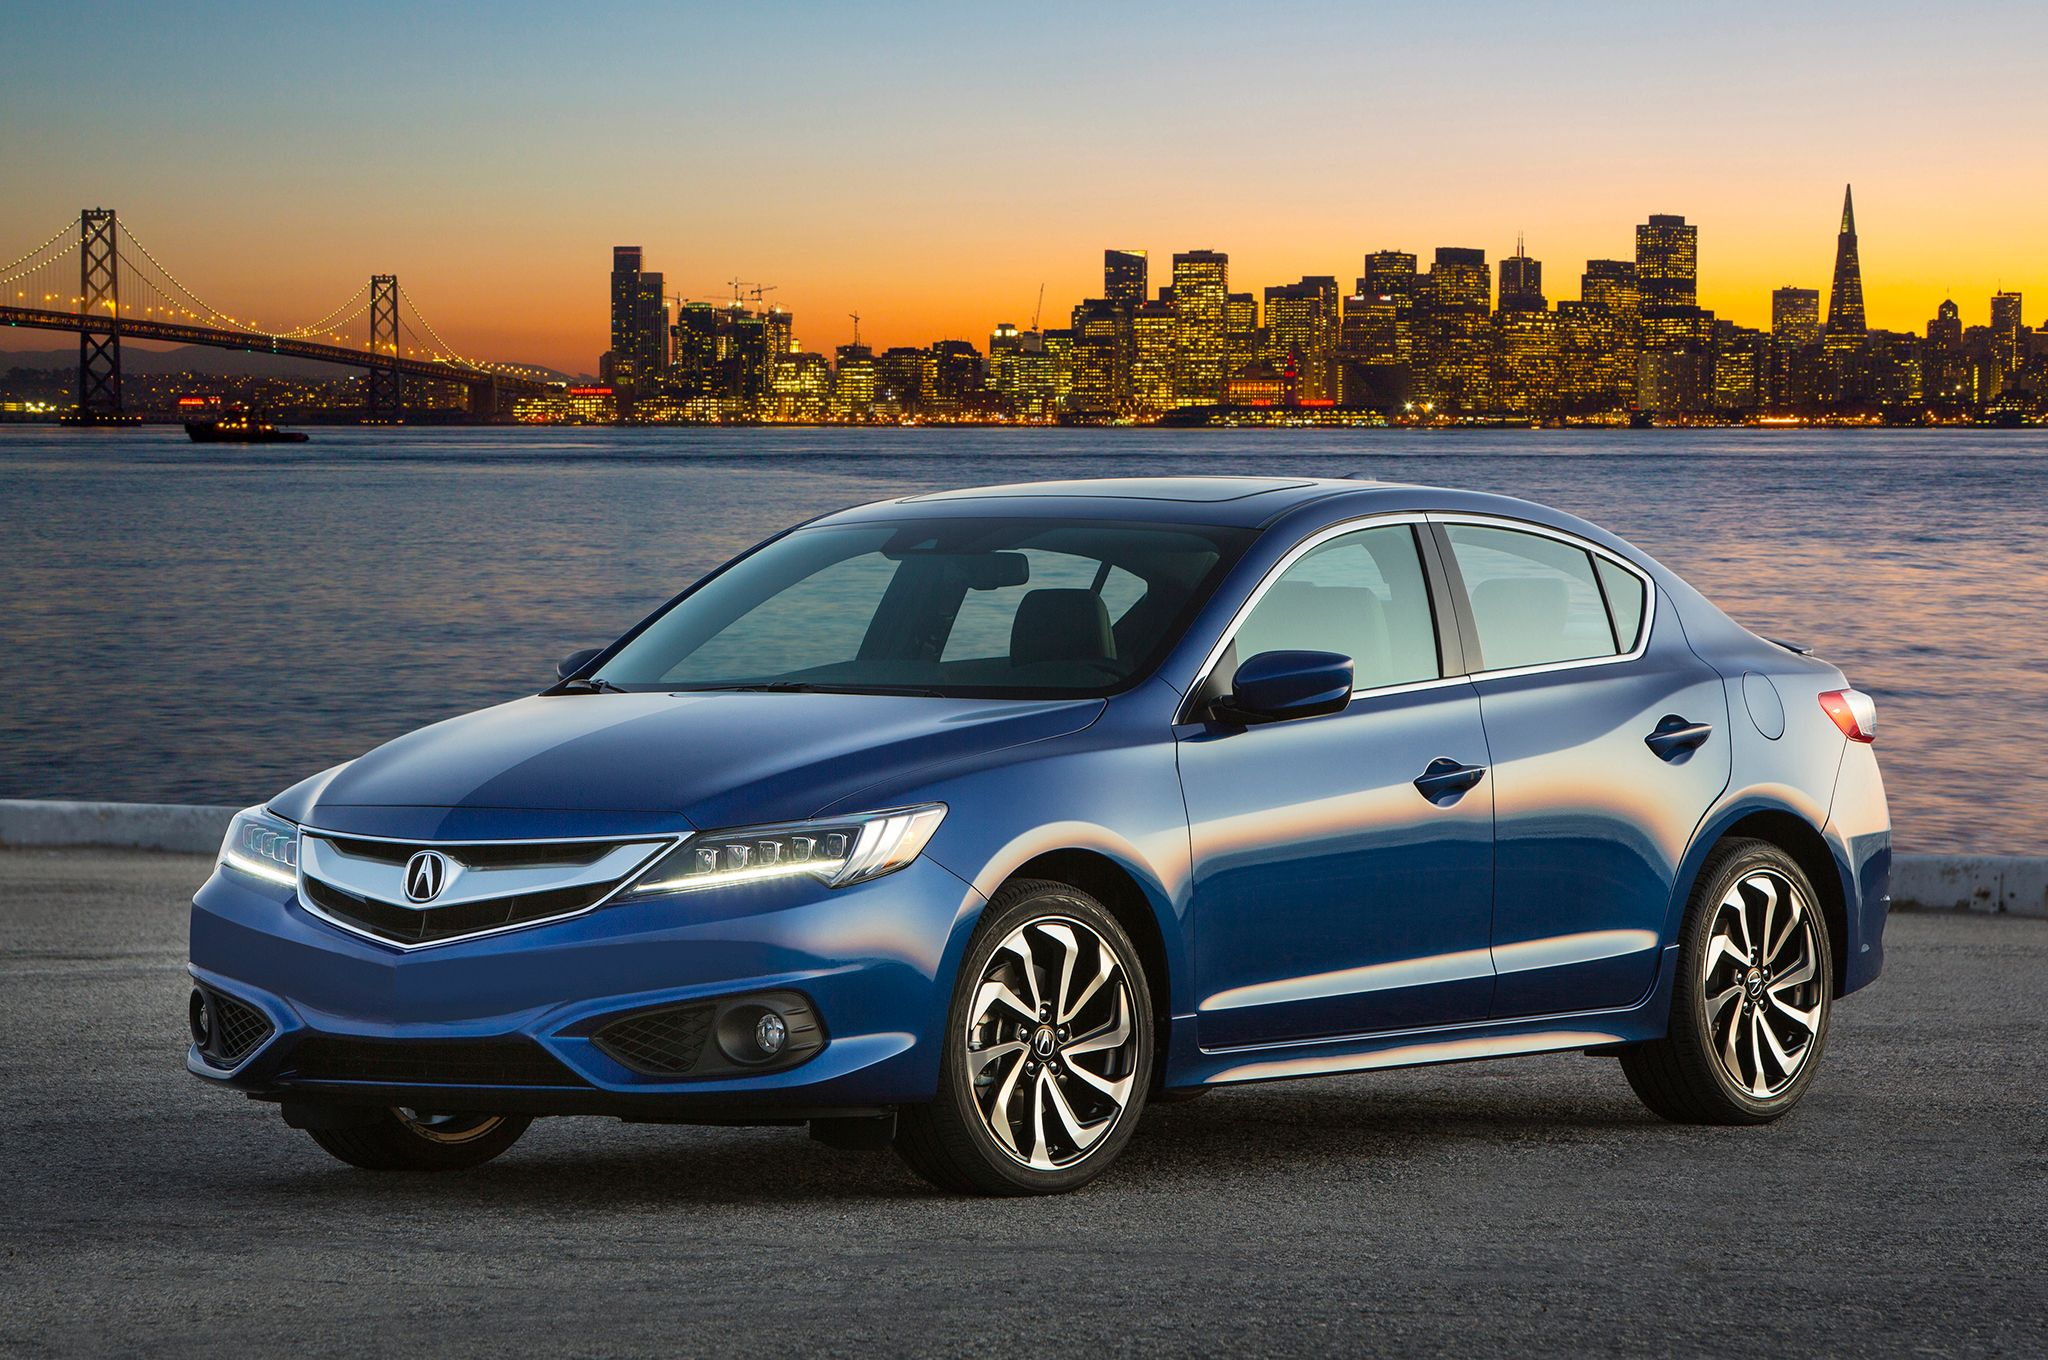 2017 Acura Ilx 235 Month 36 Month Lease 7 500 Miles Year 954 478 0488 Www Leasetechs Com Acura Ilx Acura Cars Trucks